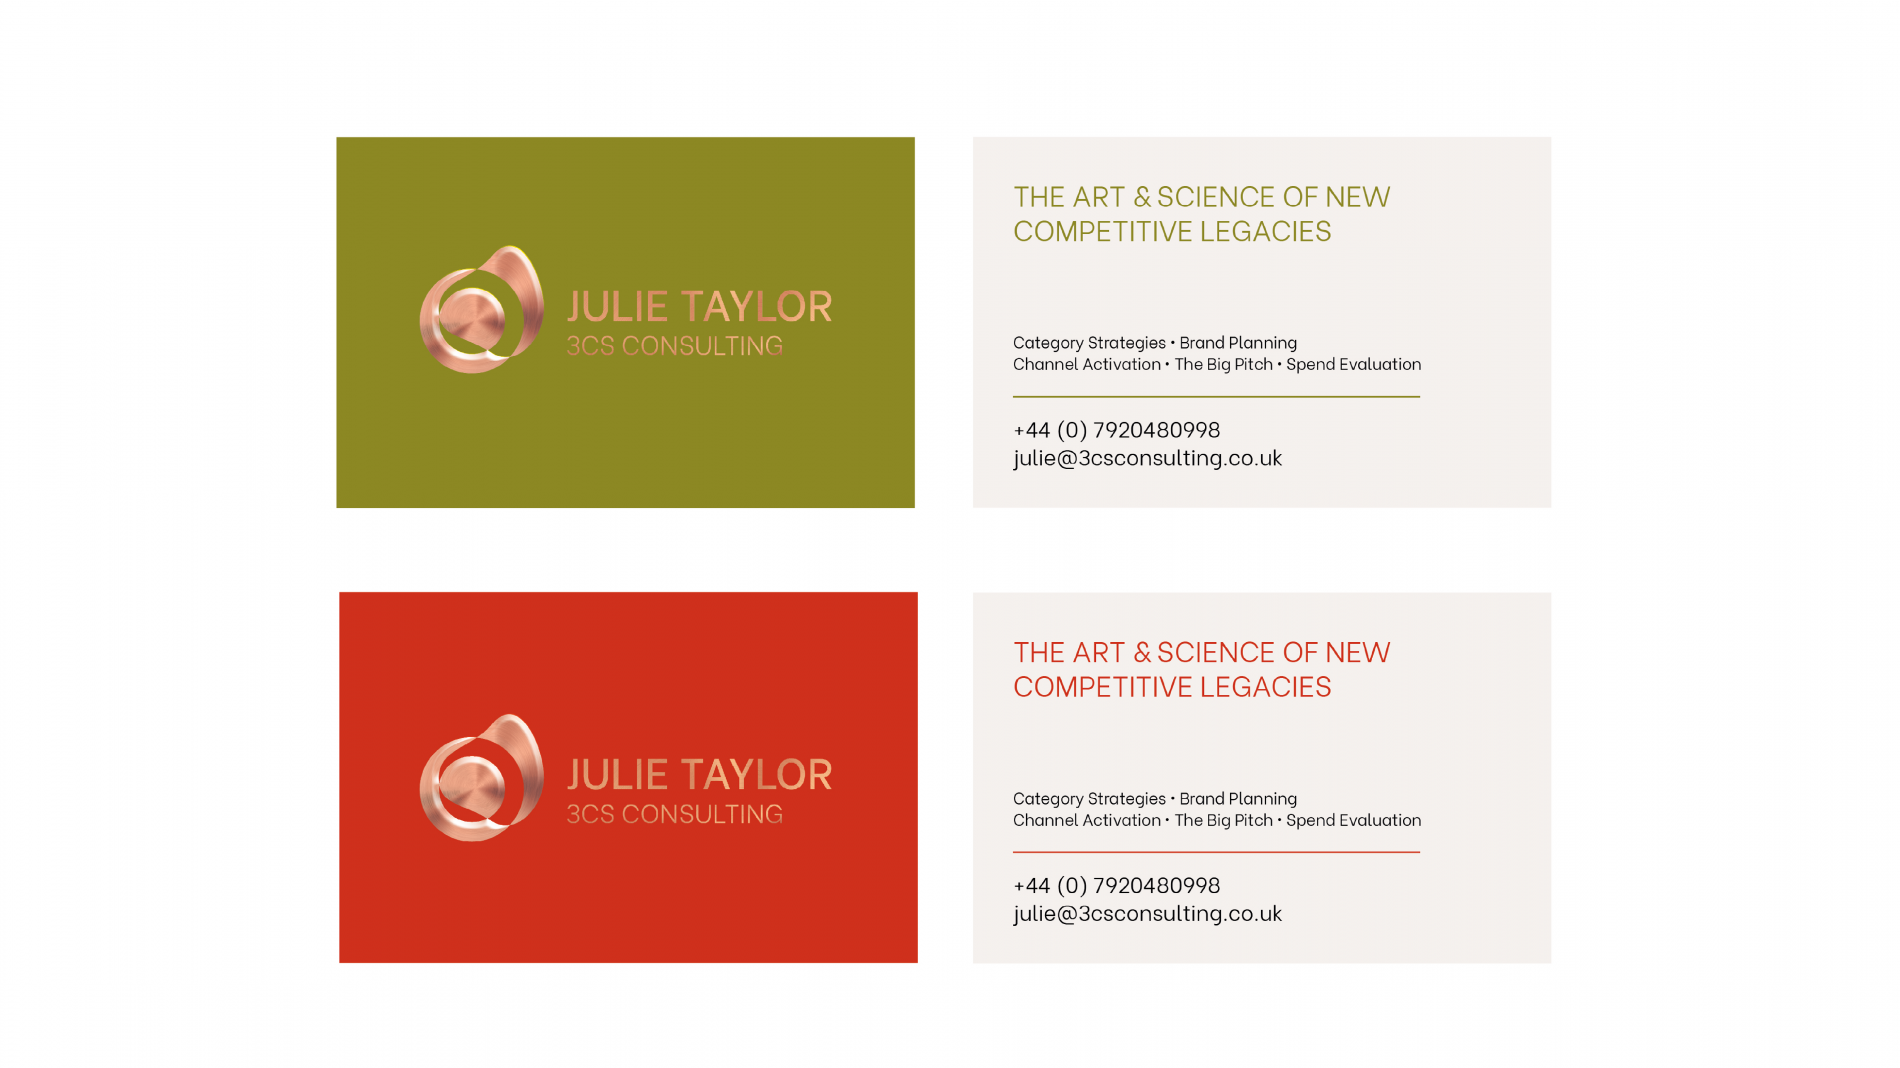 Julie Taylor 3CS consulting marketing collateral